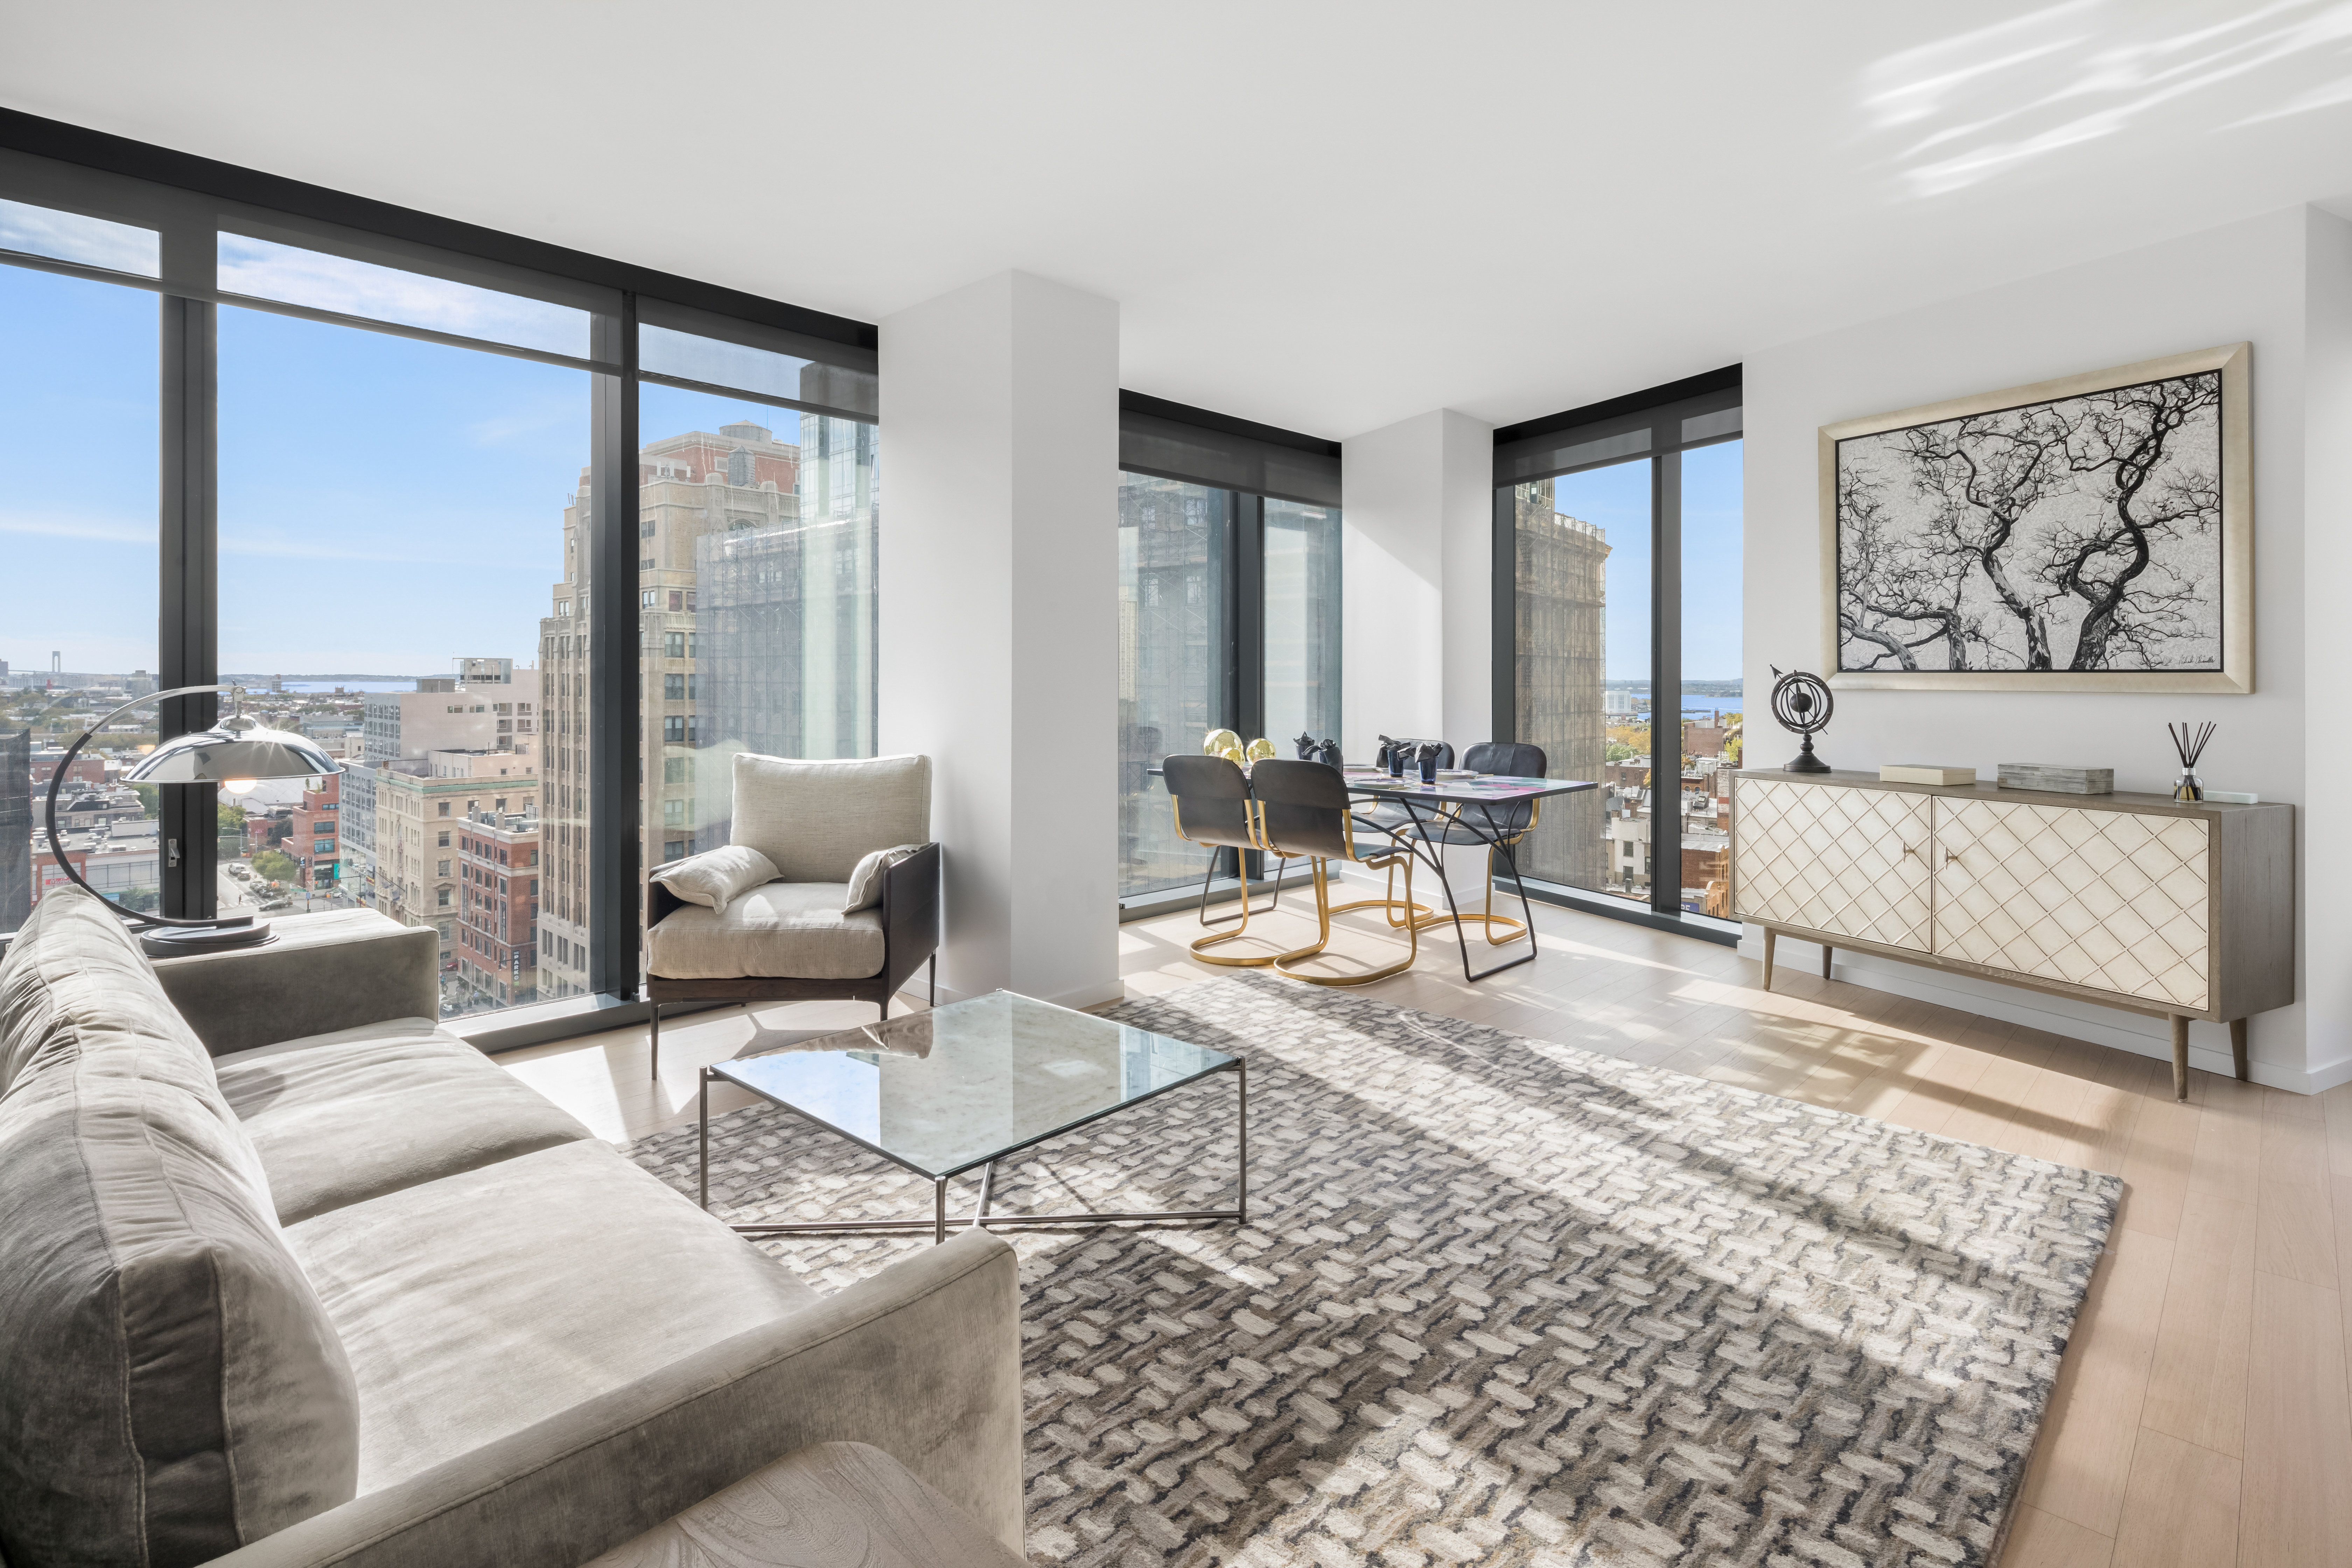 Amazing Get A Look Inside Downtown Brooklynu0027s New Luxury Rental, The Lane